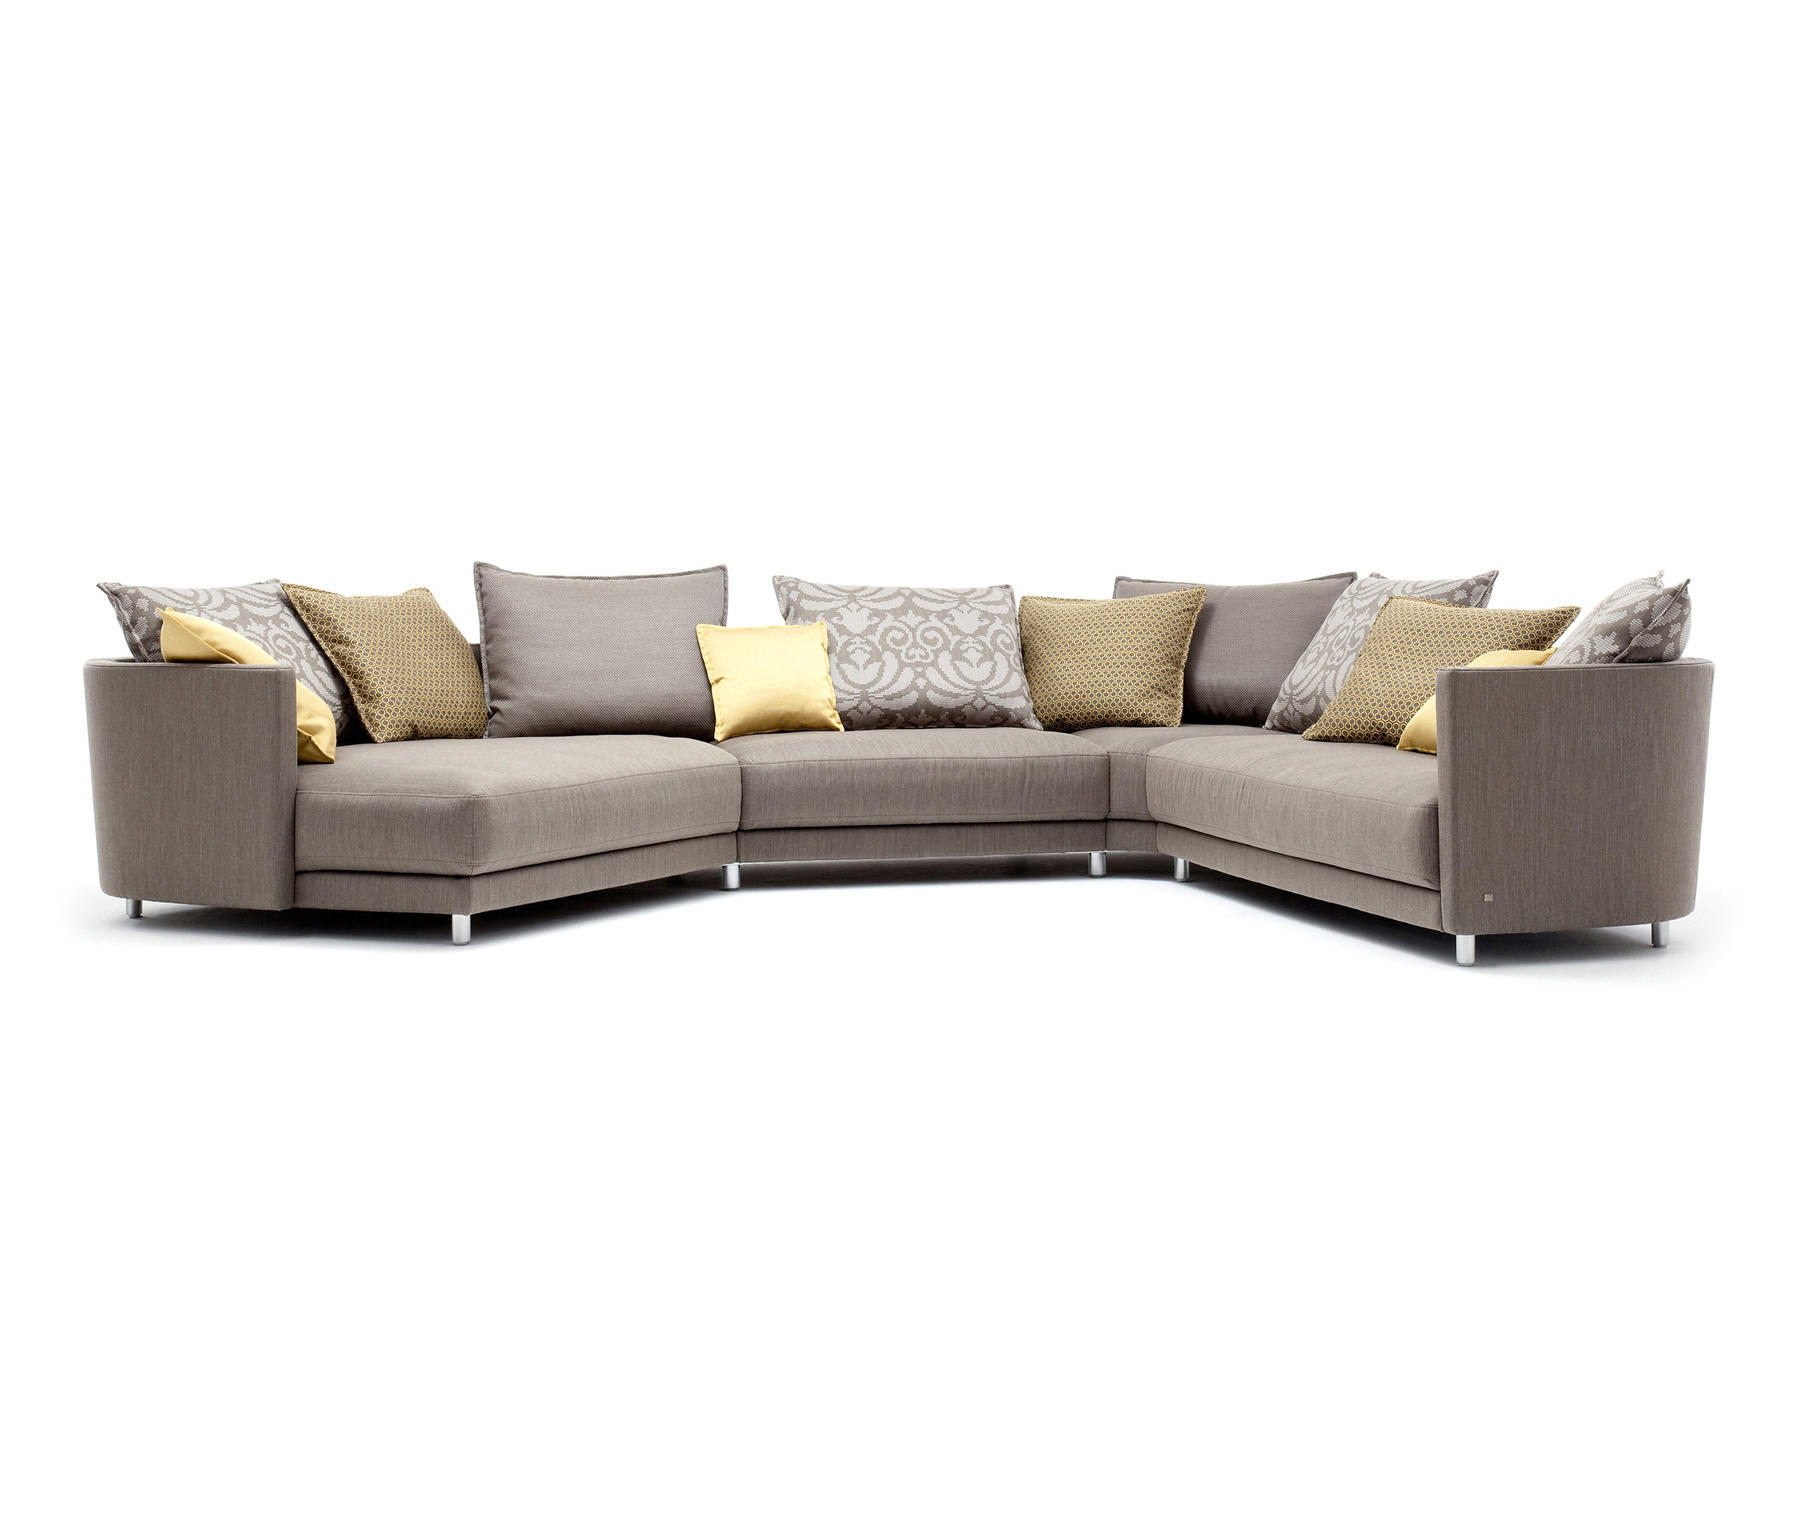 ROLF BENZ ONDA - Sofas from Rolf Benz | Architonic